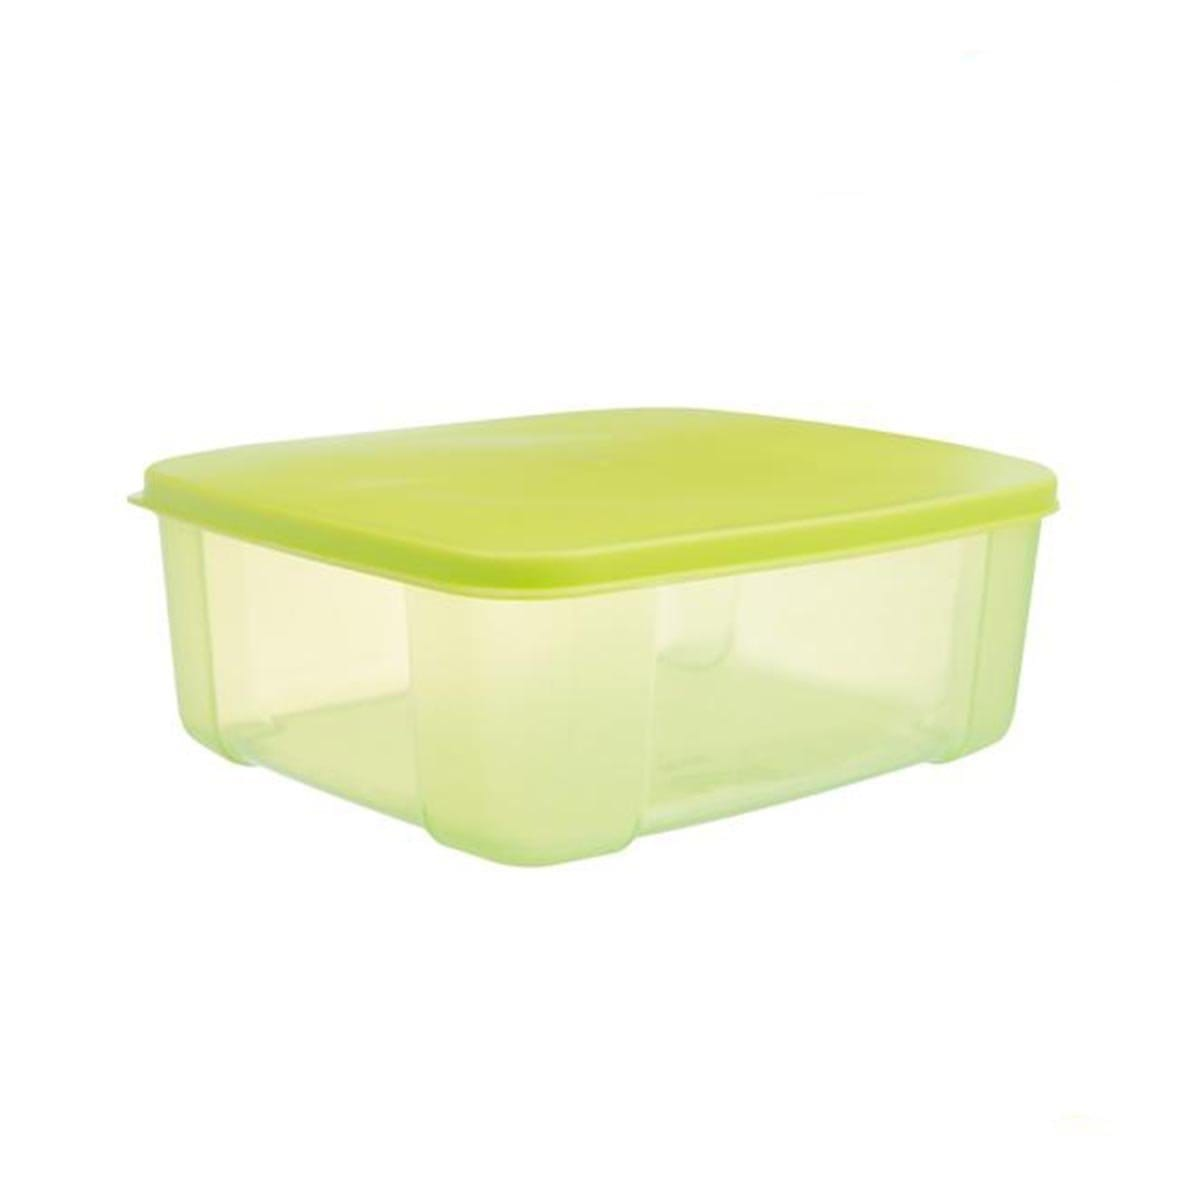 0102 Food Container 1.2L